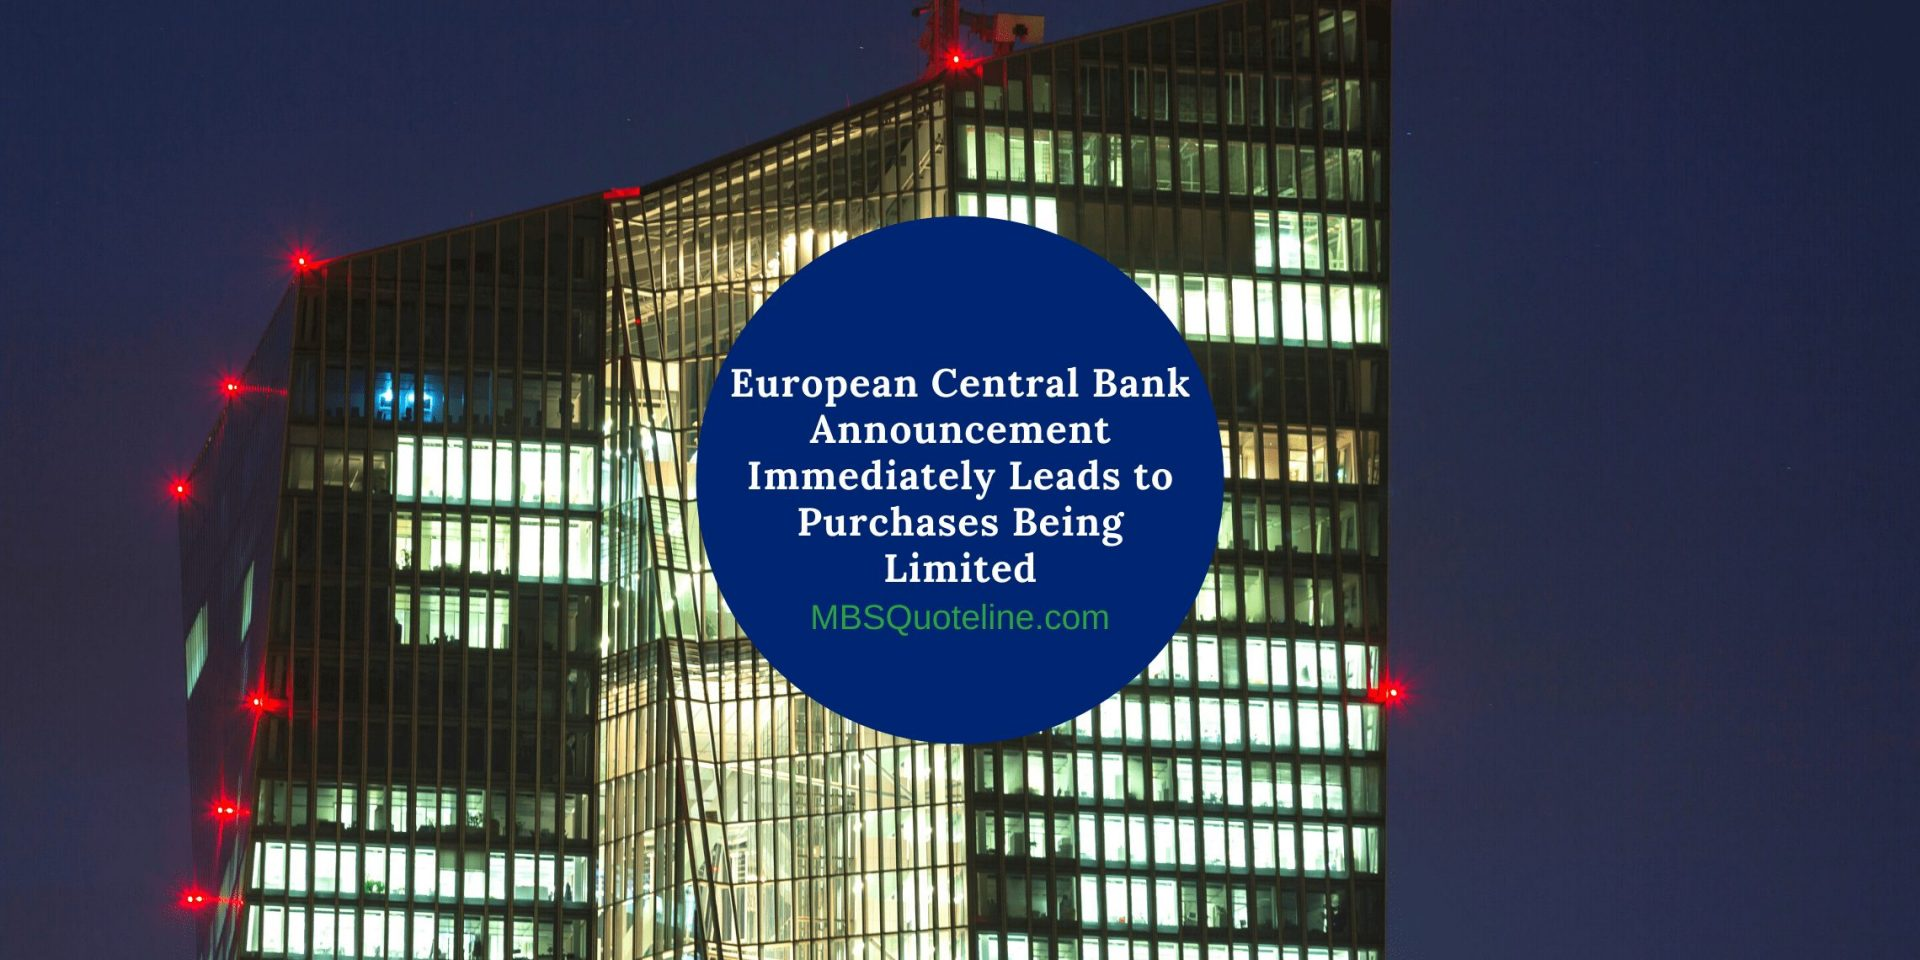 European Central Bank Announcement Immediately Leads to Purchases Being Limited mortgagetime mbsquoteline featured